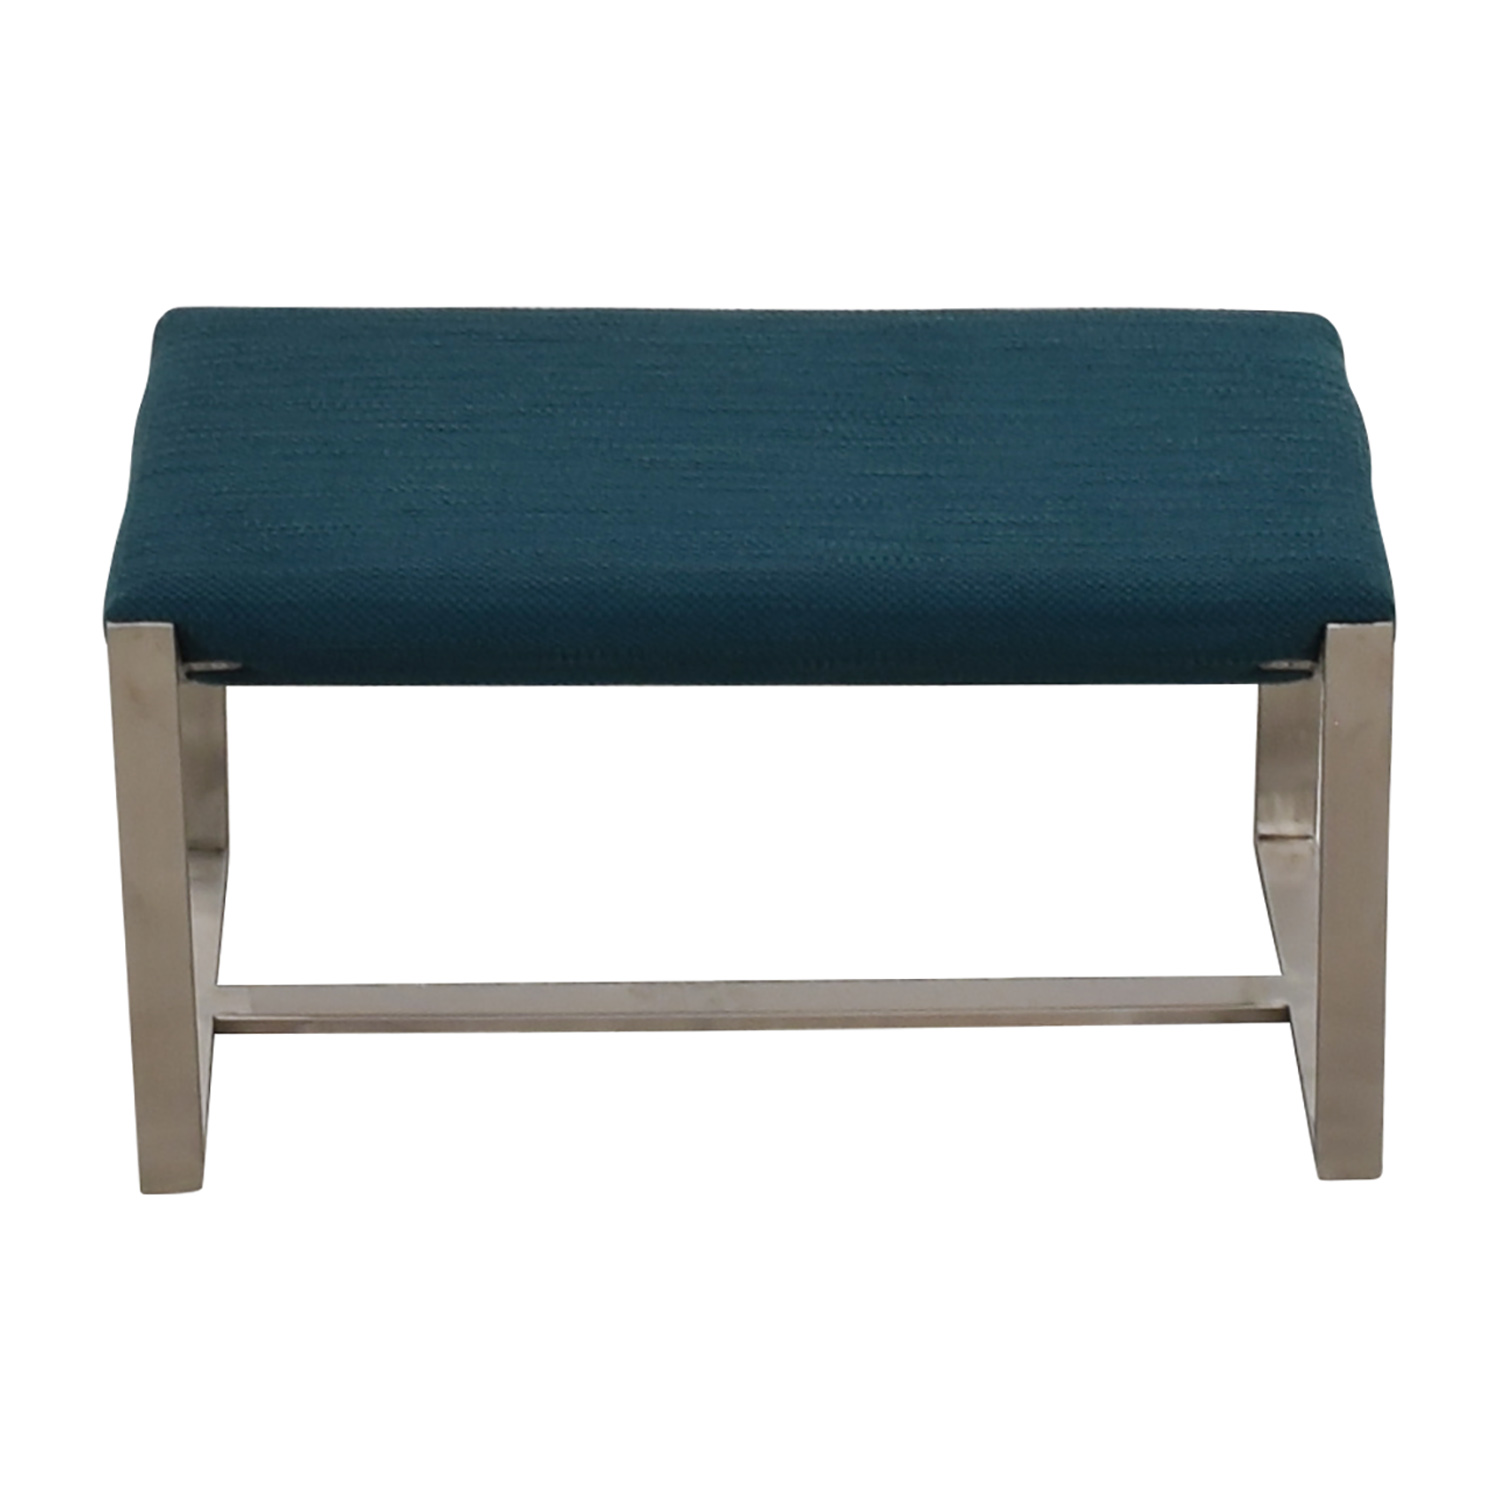 West Elm West Elm Bower Teal and Chrome Ottoman for sale